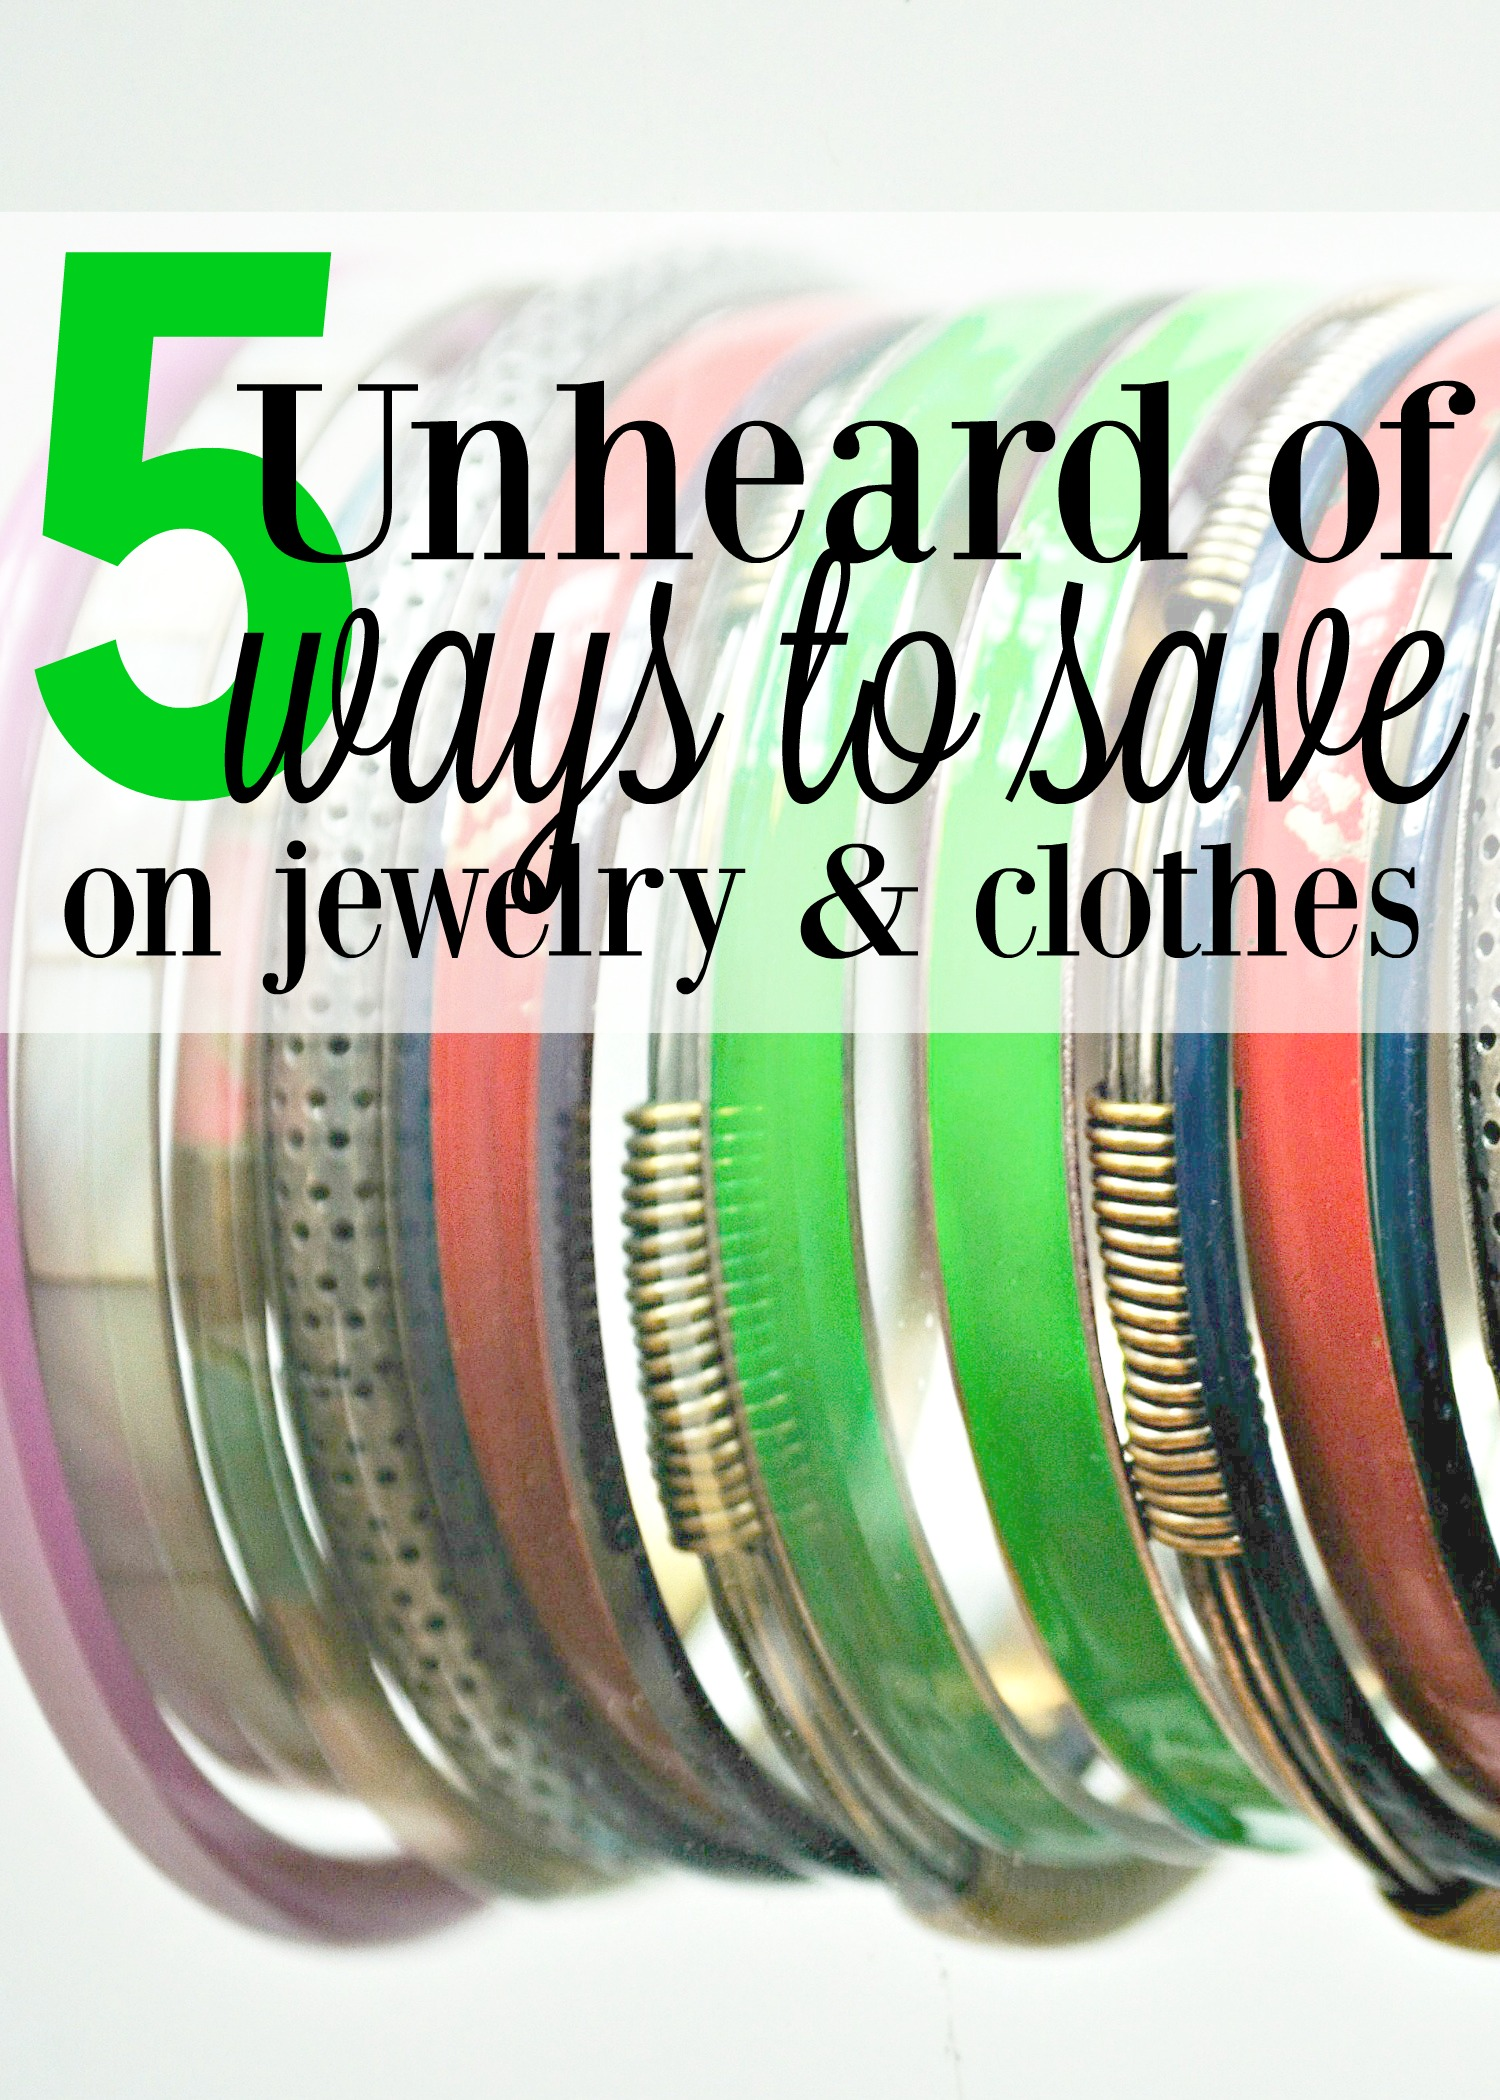 Save big with these 5 ways to go inexpensive on women's jewelry accessories, products and more. I love #2! https://www.couponcravings.com